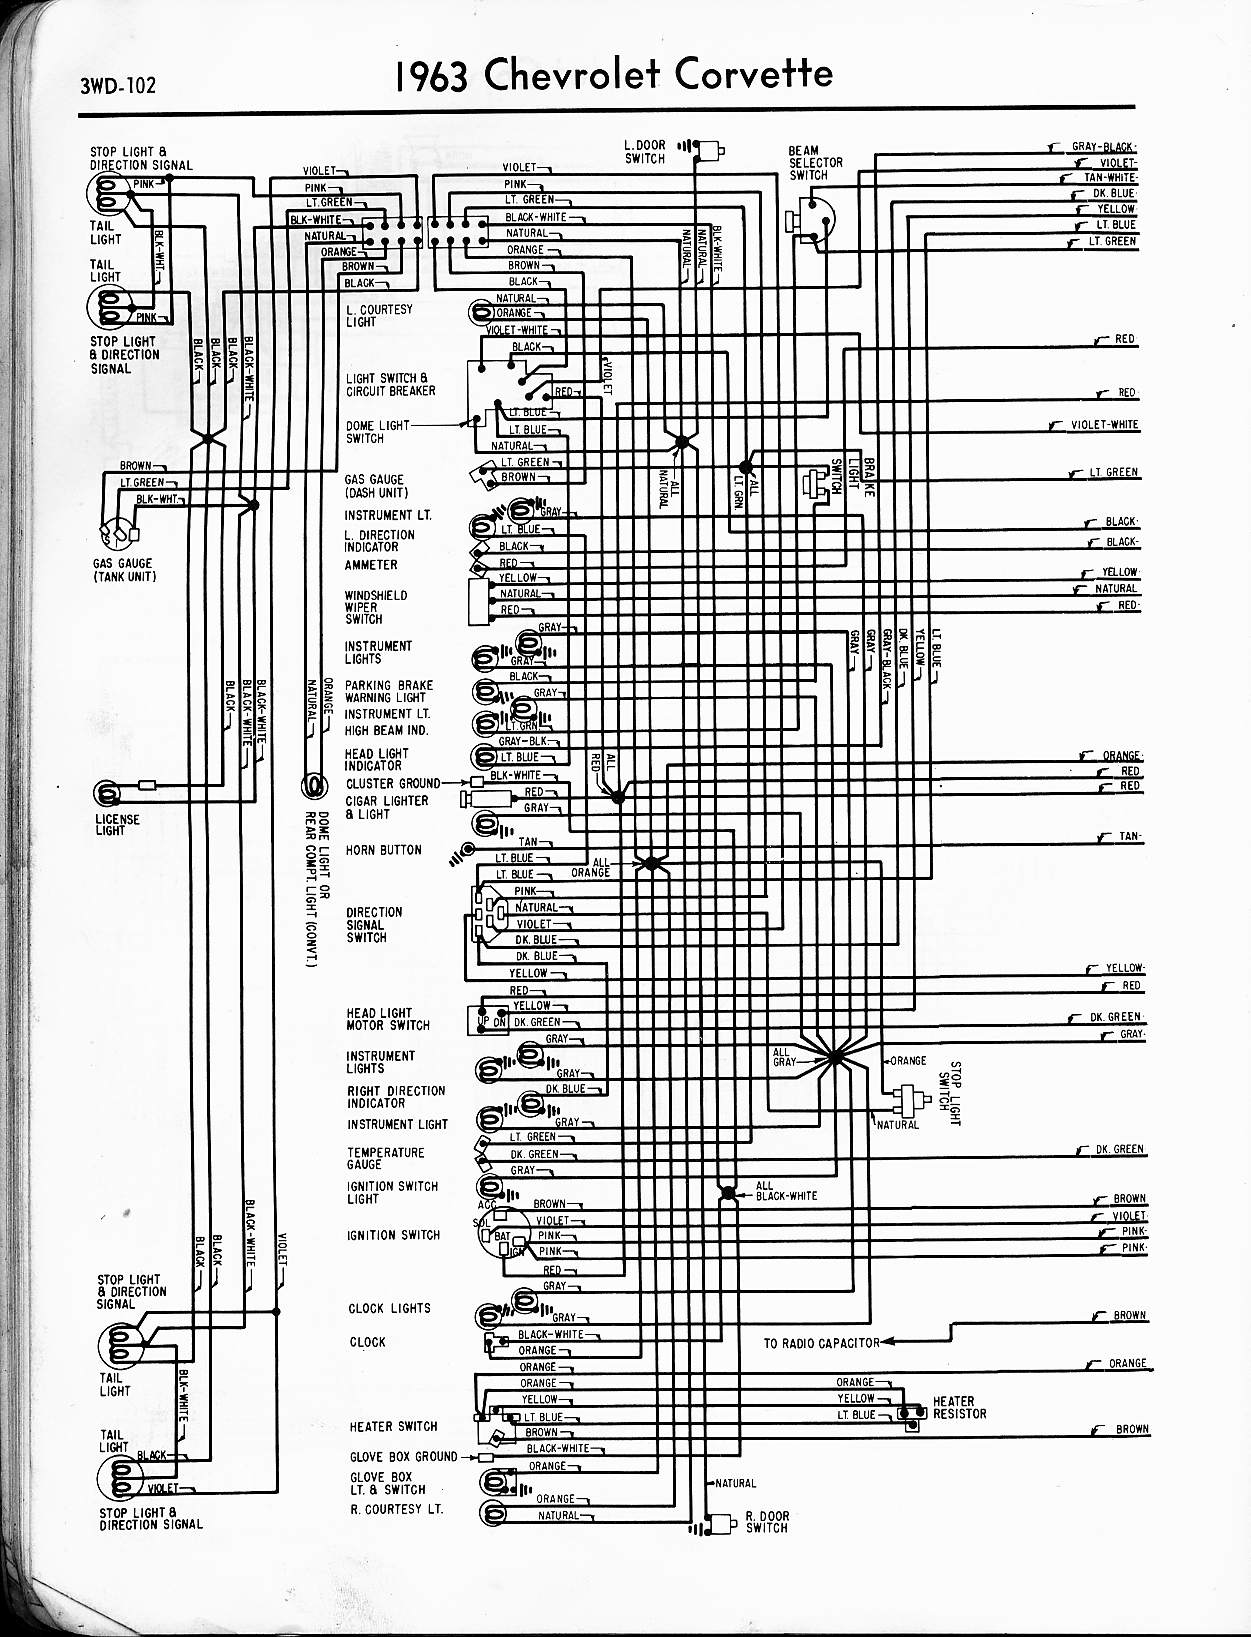 63 Corvette Wiring Diagram Opinions About 1963 Volkswagen Headlight